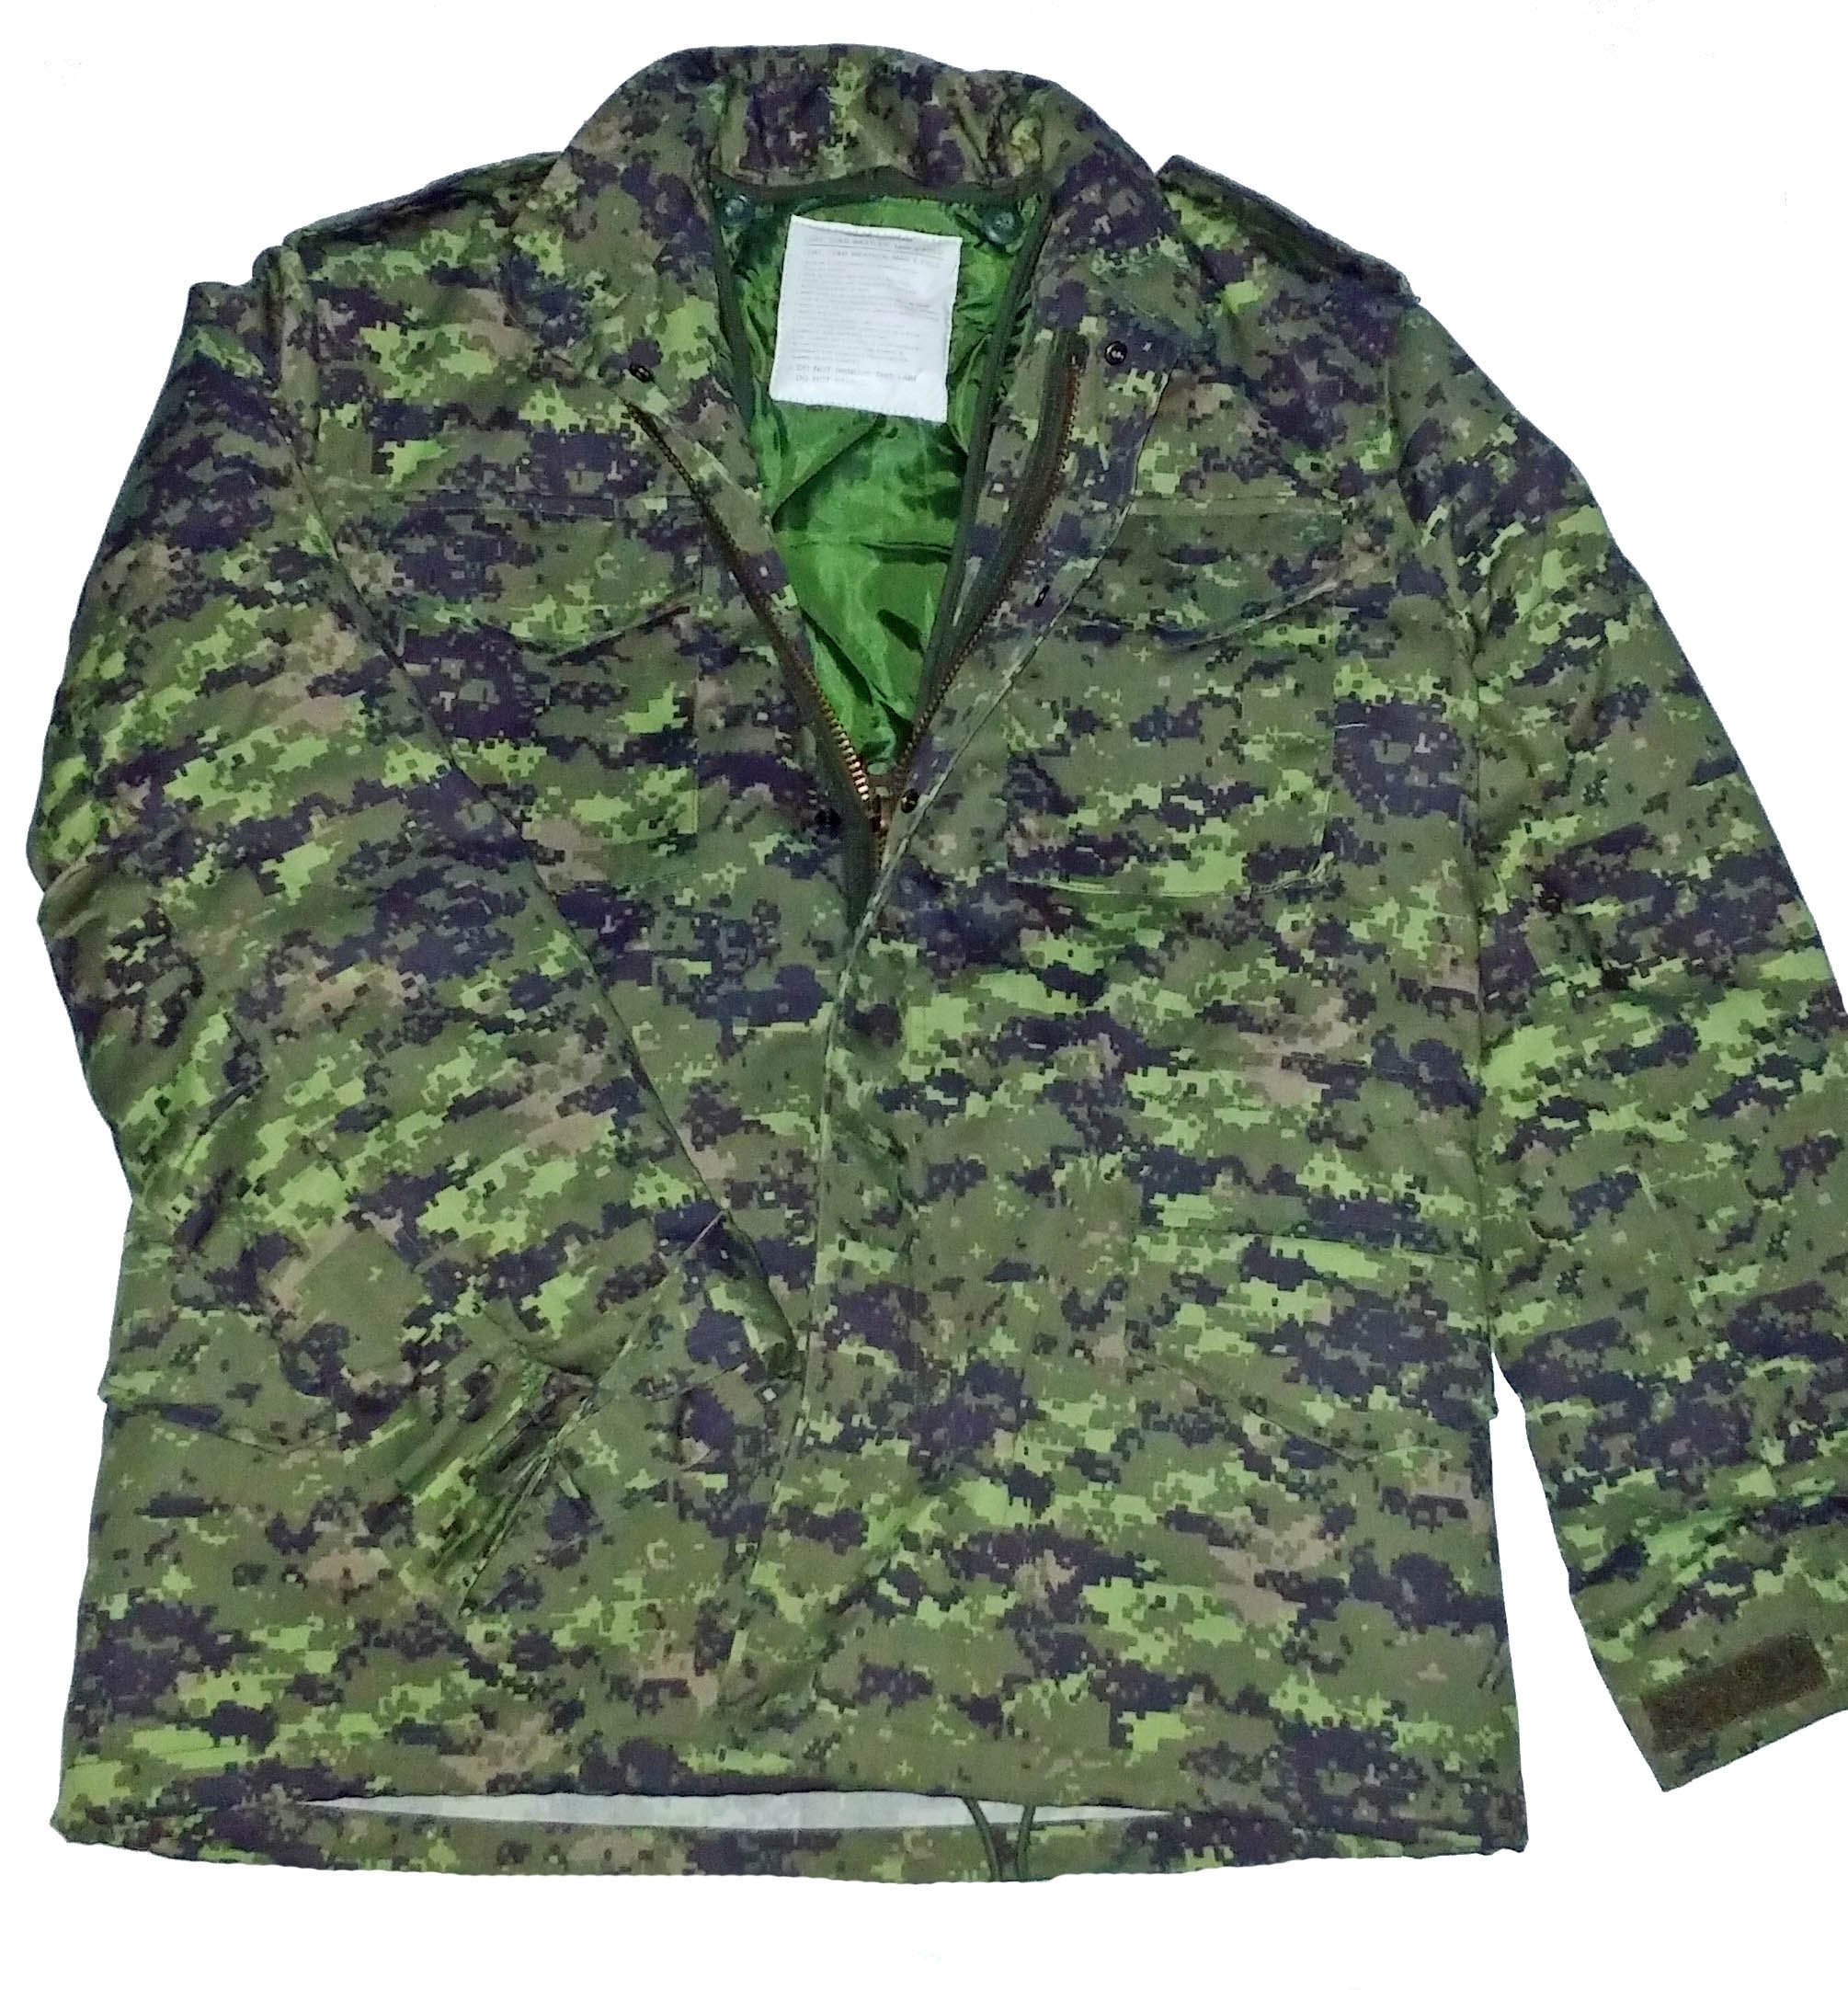 Canadian digital M-65 jacket